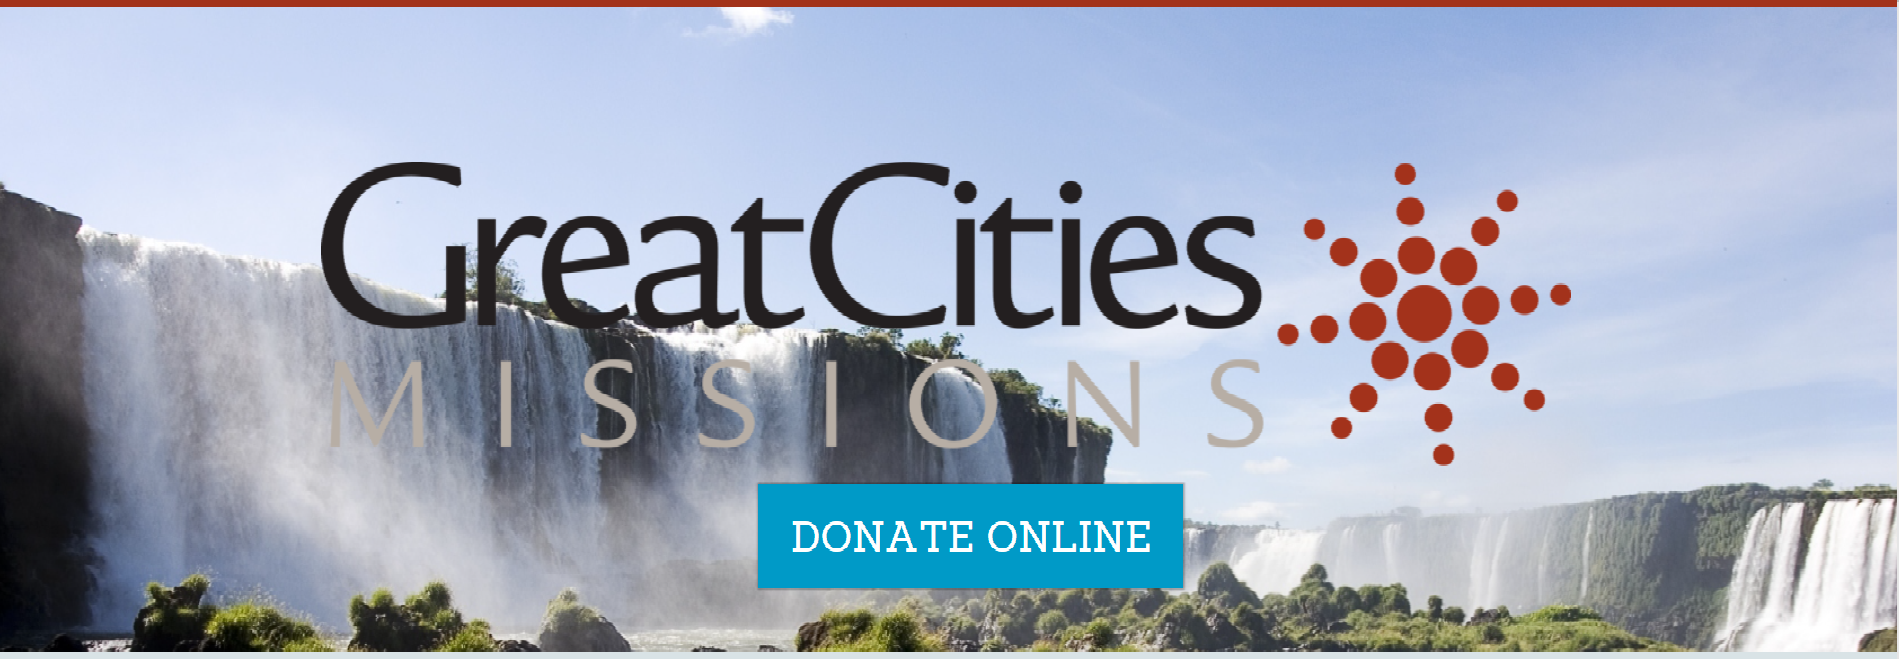 Great Cities Missions.png